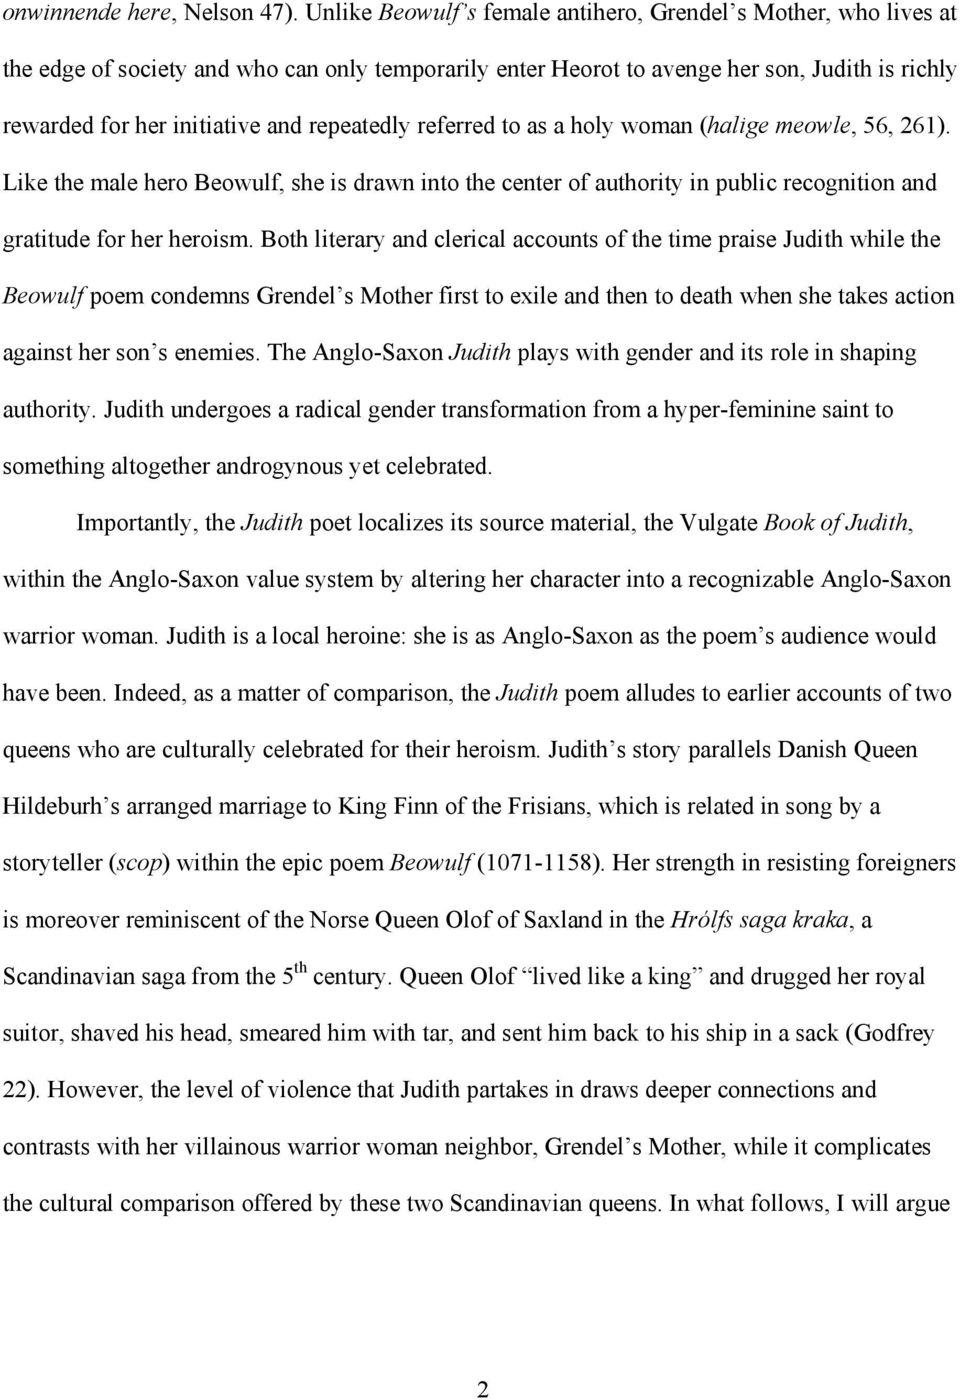 FEMALE HEROISM AND LEADERSHIP IN THE ANGLO-SAXON JUDITH - PDF